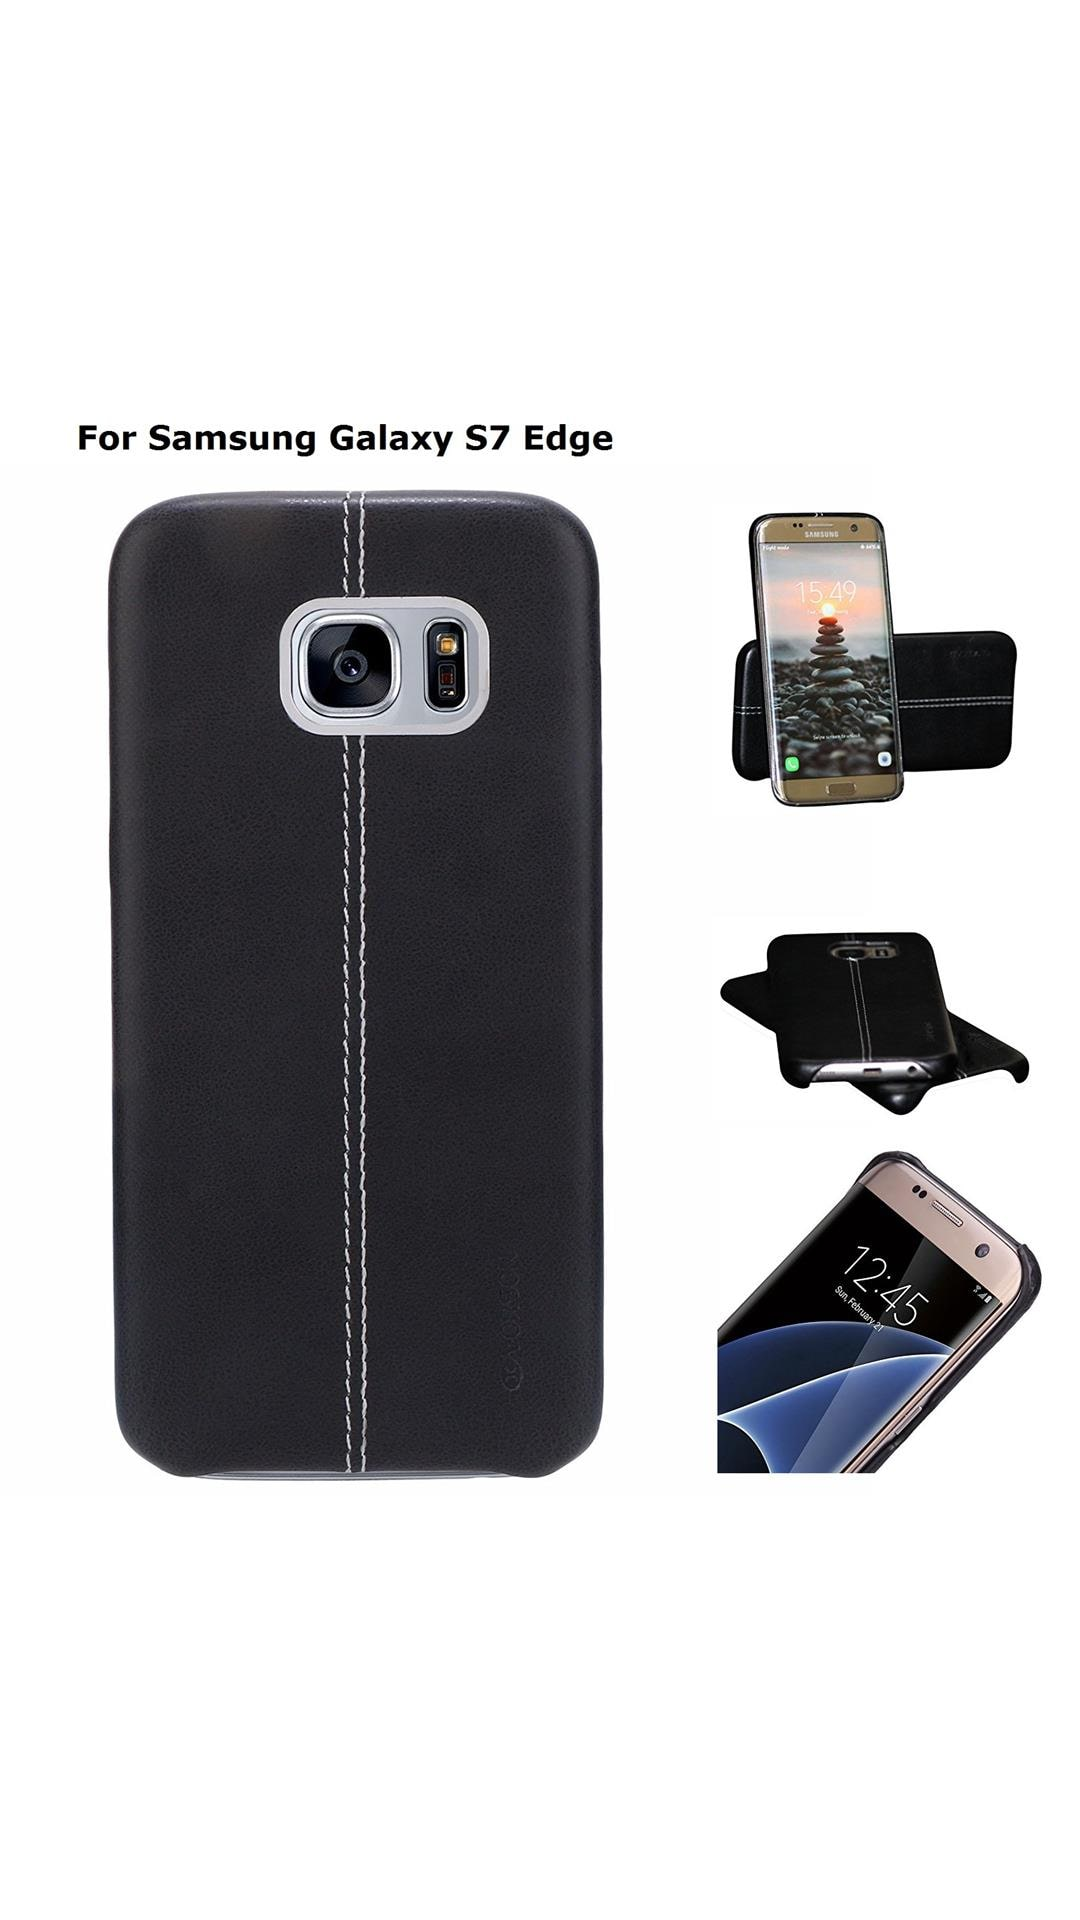 Buy TGK Premium Luxury Leather Lexza Series Double Stitch Shell with  Metallic Logo Display Vorson Back Cover Case for Samsung Galaxy S7 Edge  (Black) Online ... de3f5fb958c2